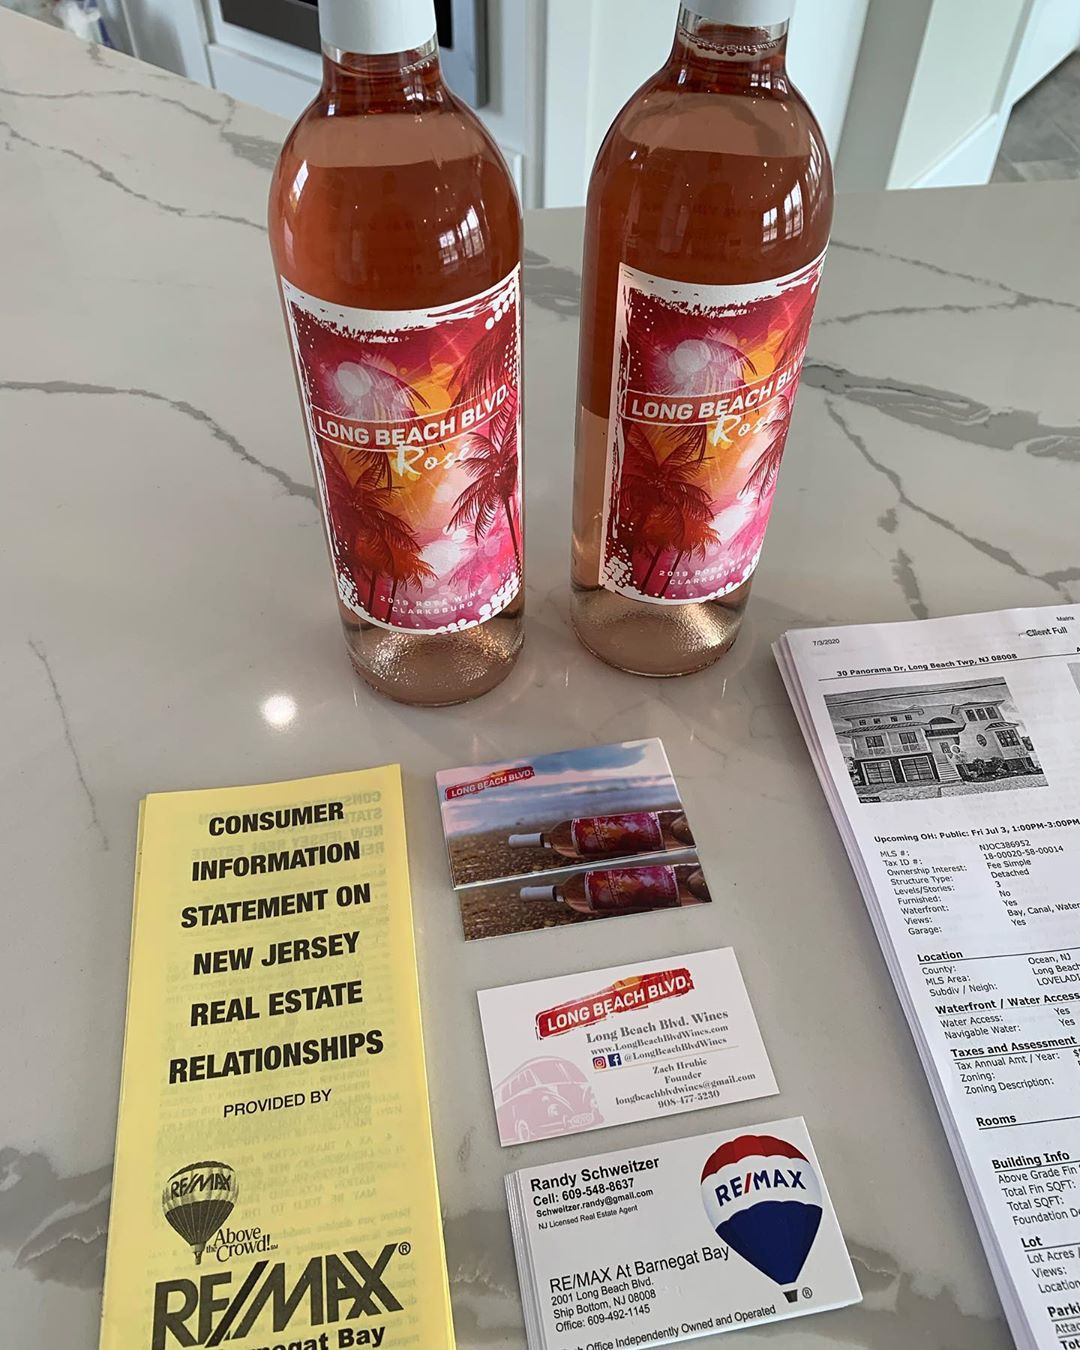 LBI Stop by my open house I'm Giving away a FREE bottle of Long Beach Blvd Wines – R…